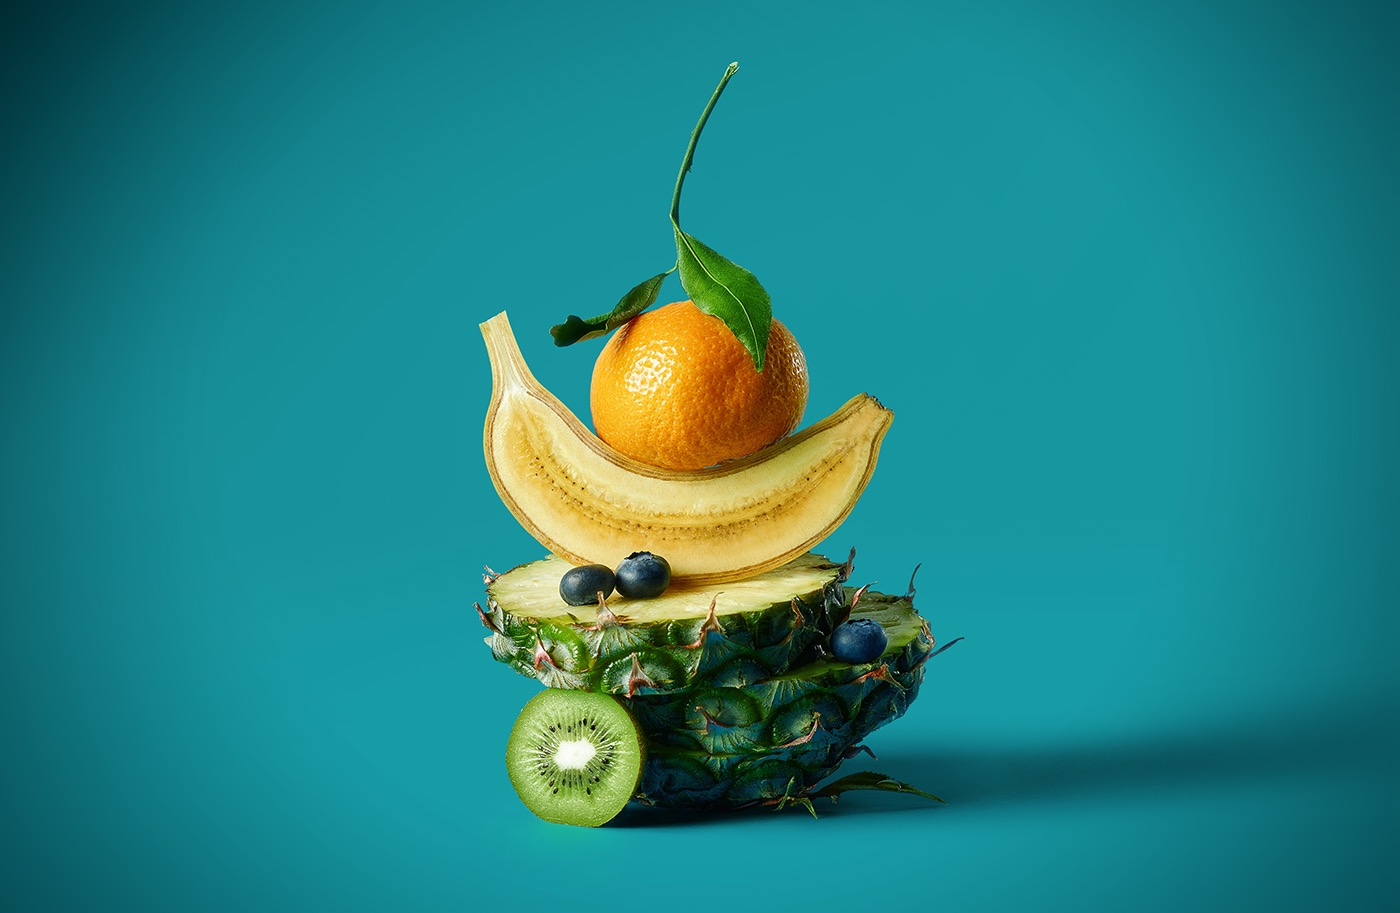 Food Photography & Retouching Ideas For Inspiration (7)